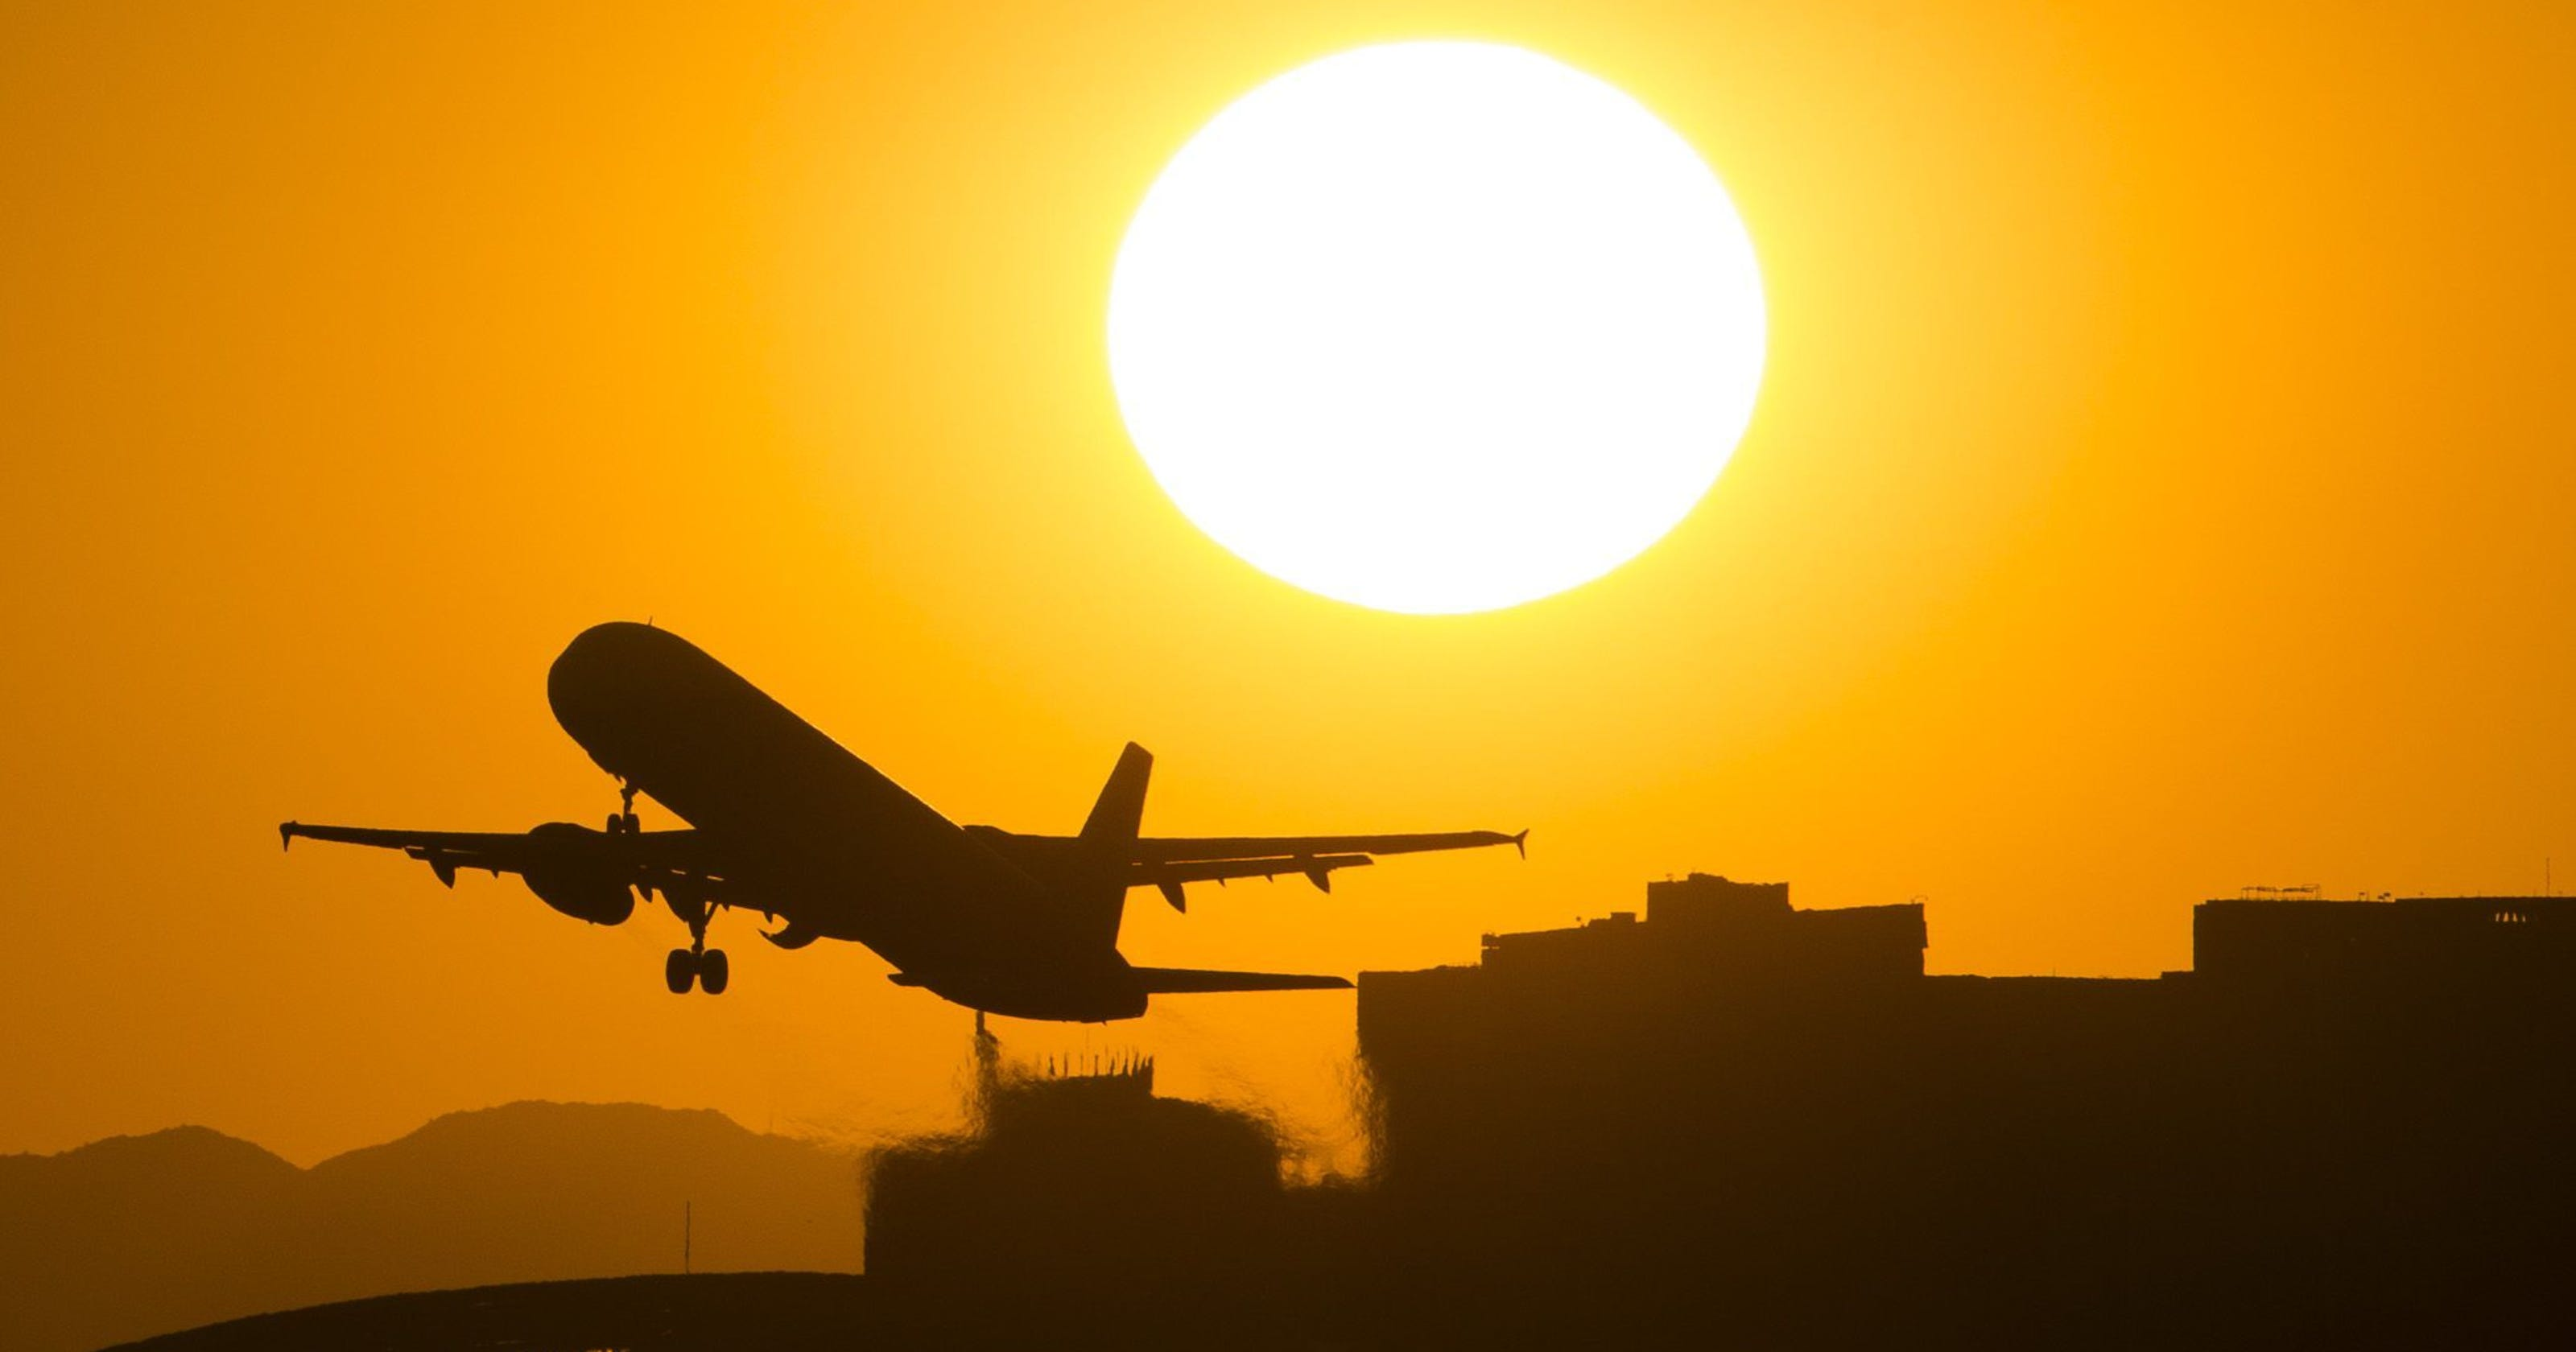 Extreme heat could delay Phoenix flights on airplane in-flight, airplane stopping, airplane sizing, airplane dimensions, airplane food, airplane design, airplane in the sky, airplane at airport, airplane type, airplane opening, airplane lifting, airplane door, airplane on ground, airplane marshalling, airplane drag, airplane water, airplane transportation, airplane size, airplane cabin, airplane parts diagram,